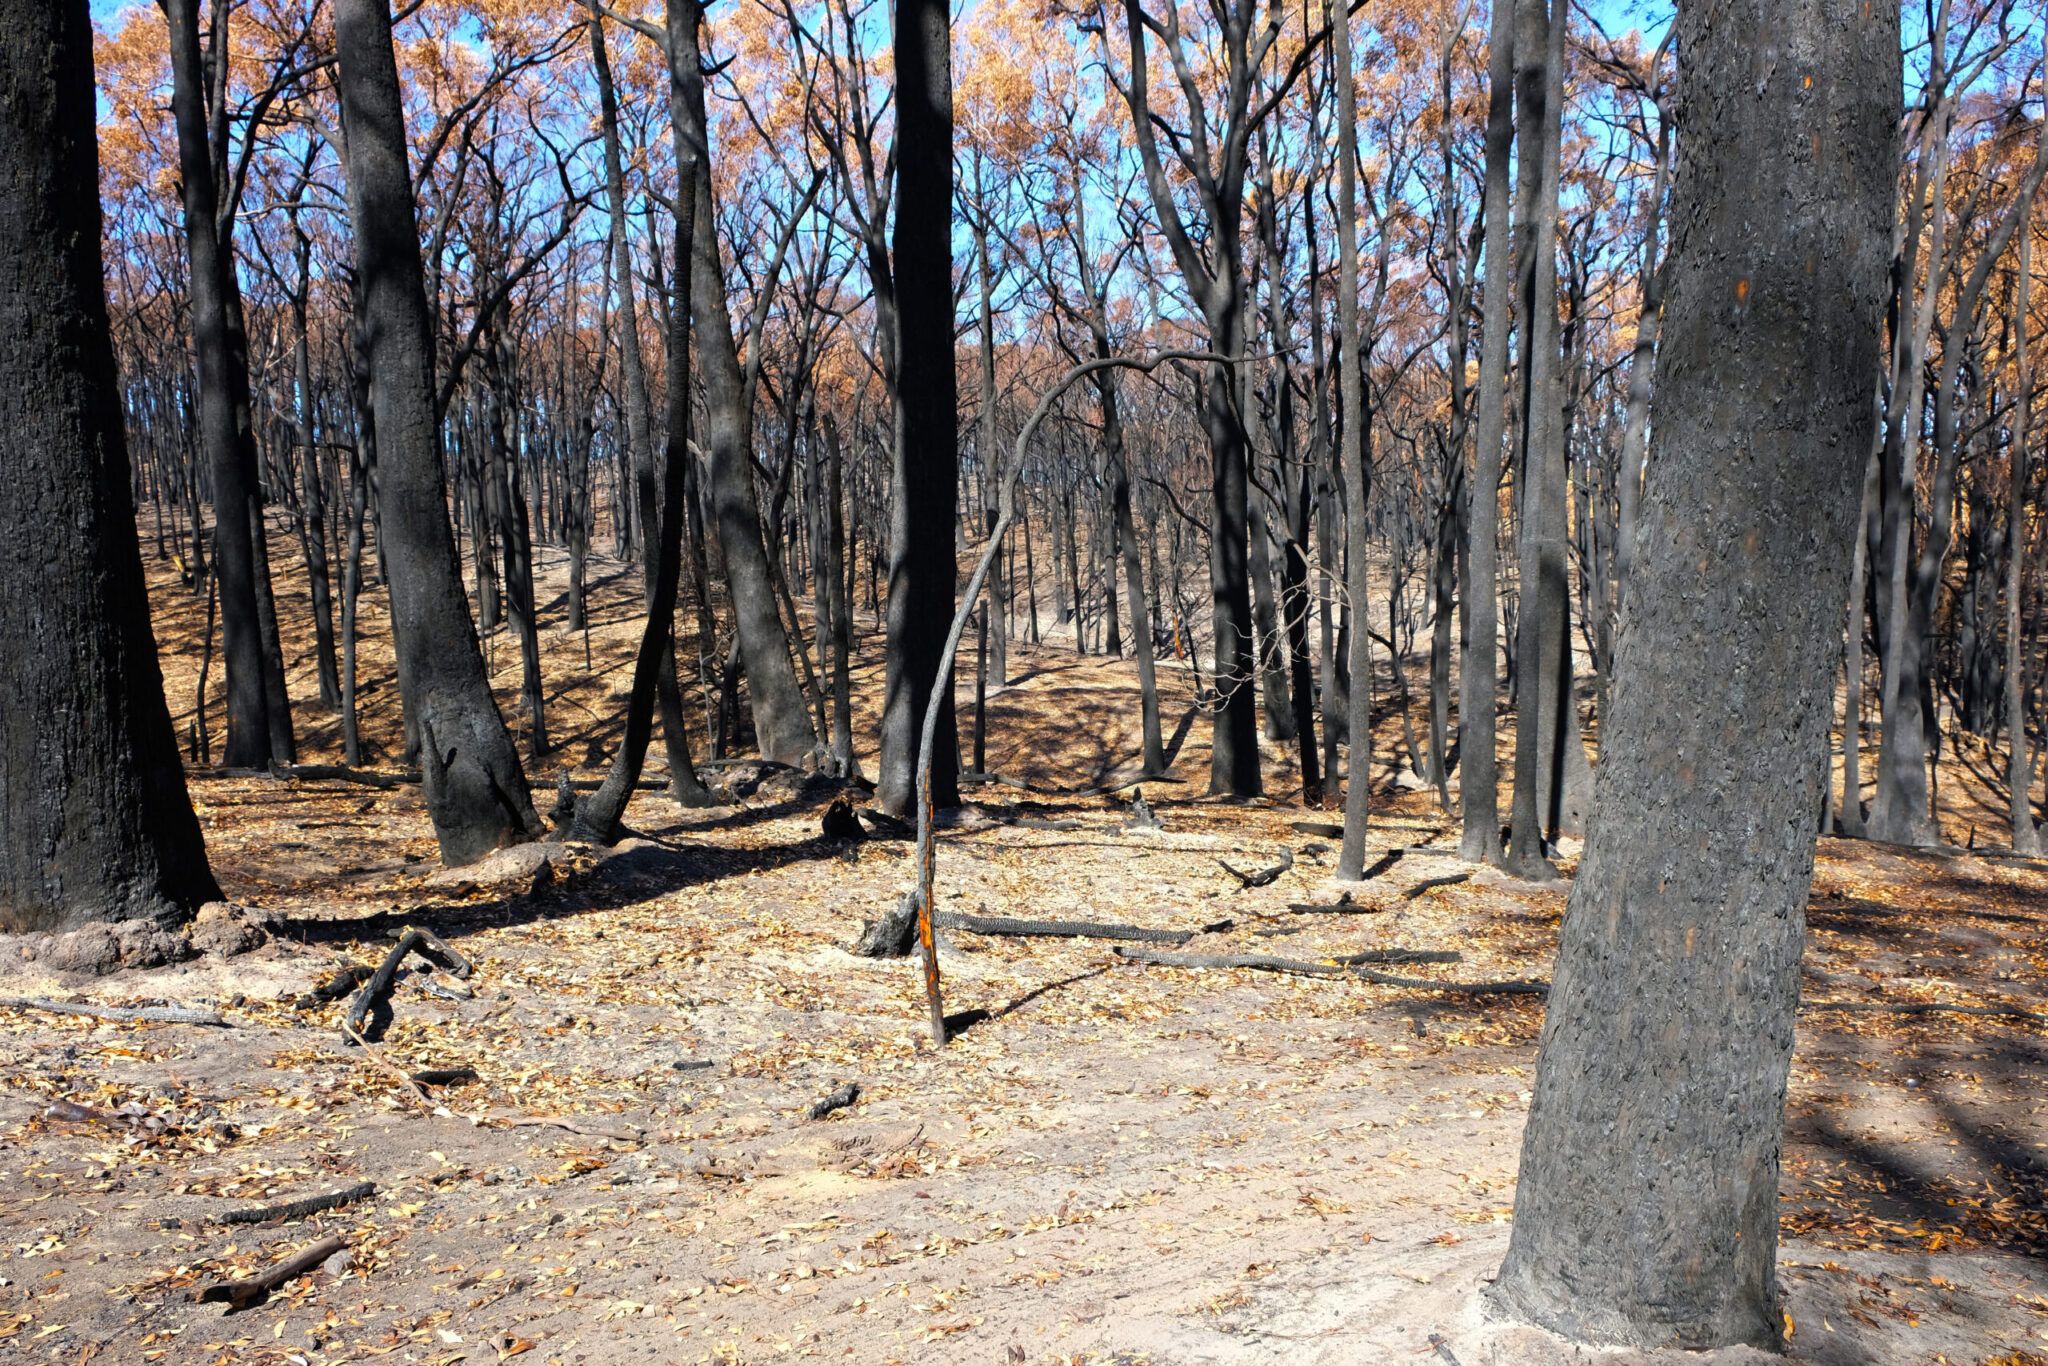 Motion – Devastation from 2019/20 Bushfires